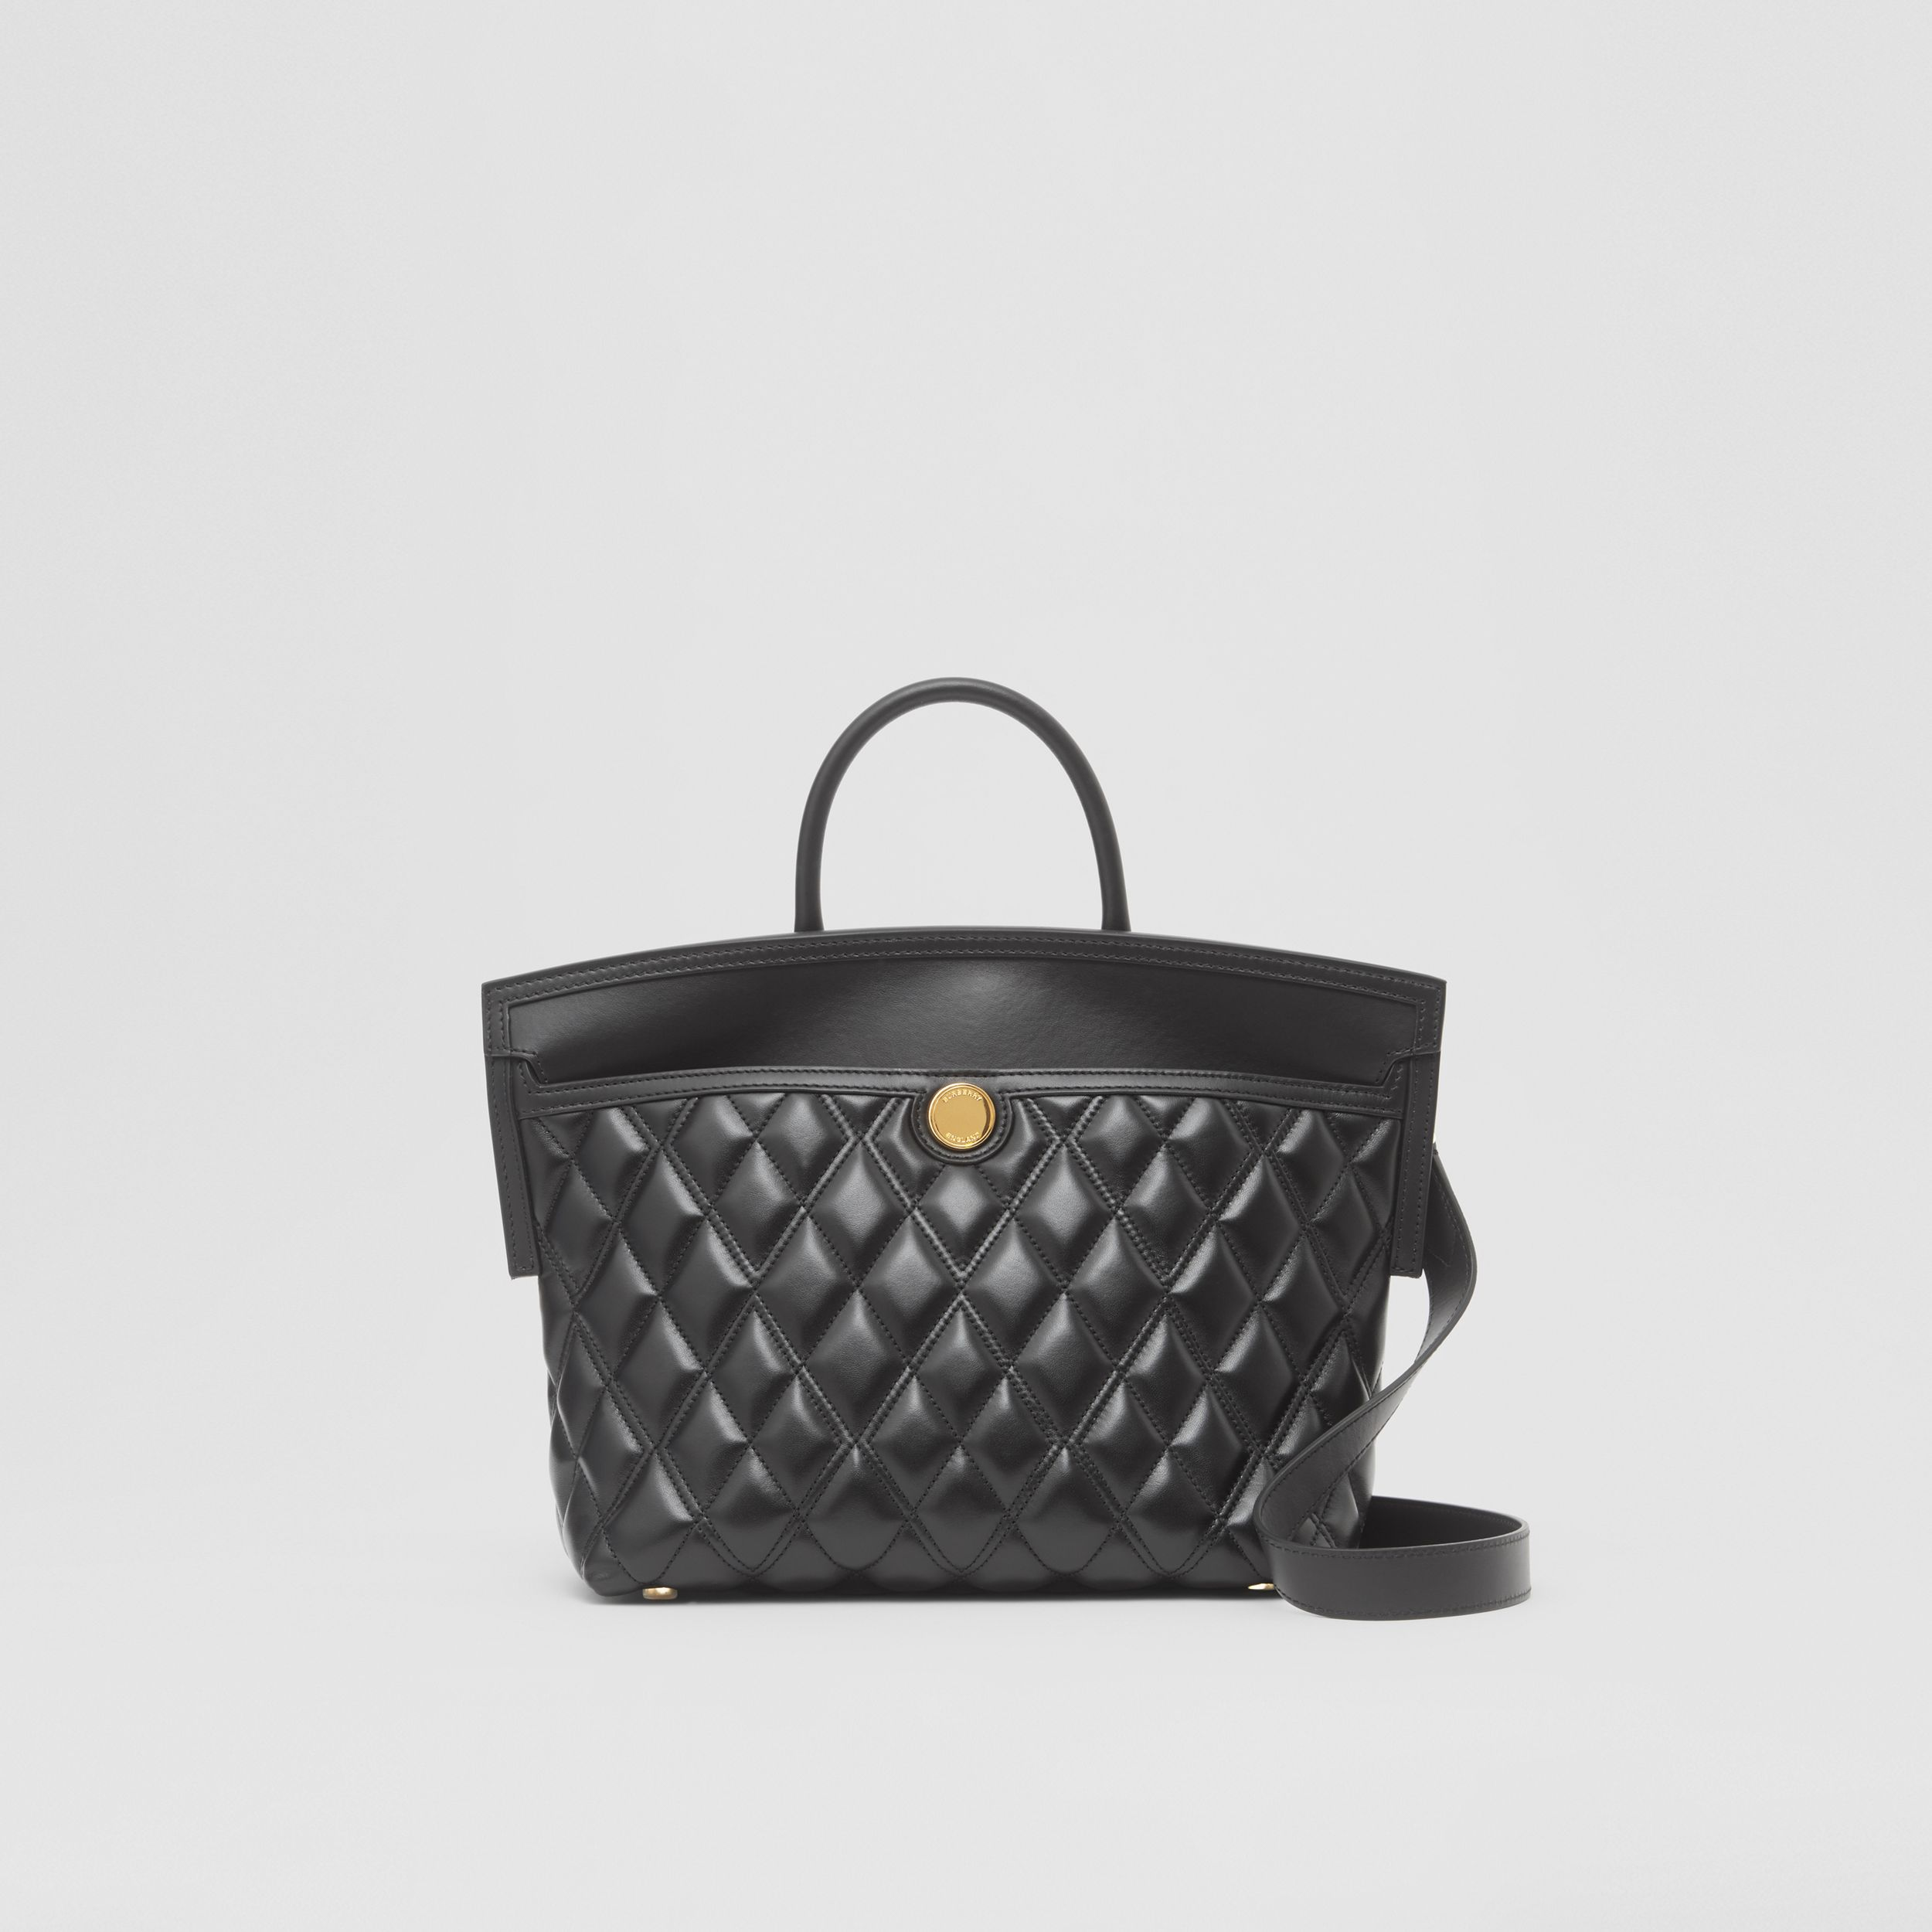 Small Quilted Lambskin Society Top Handle Bag in Black - Women | Burberry - 1